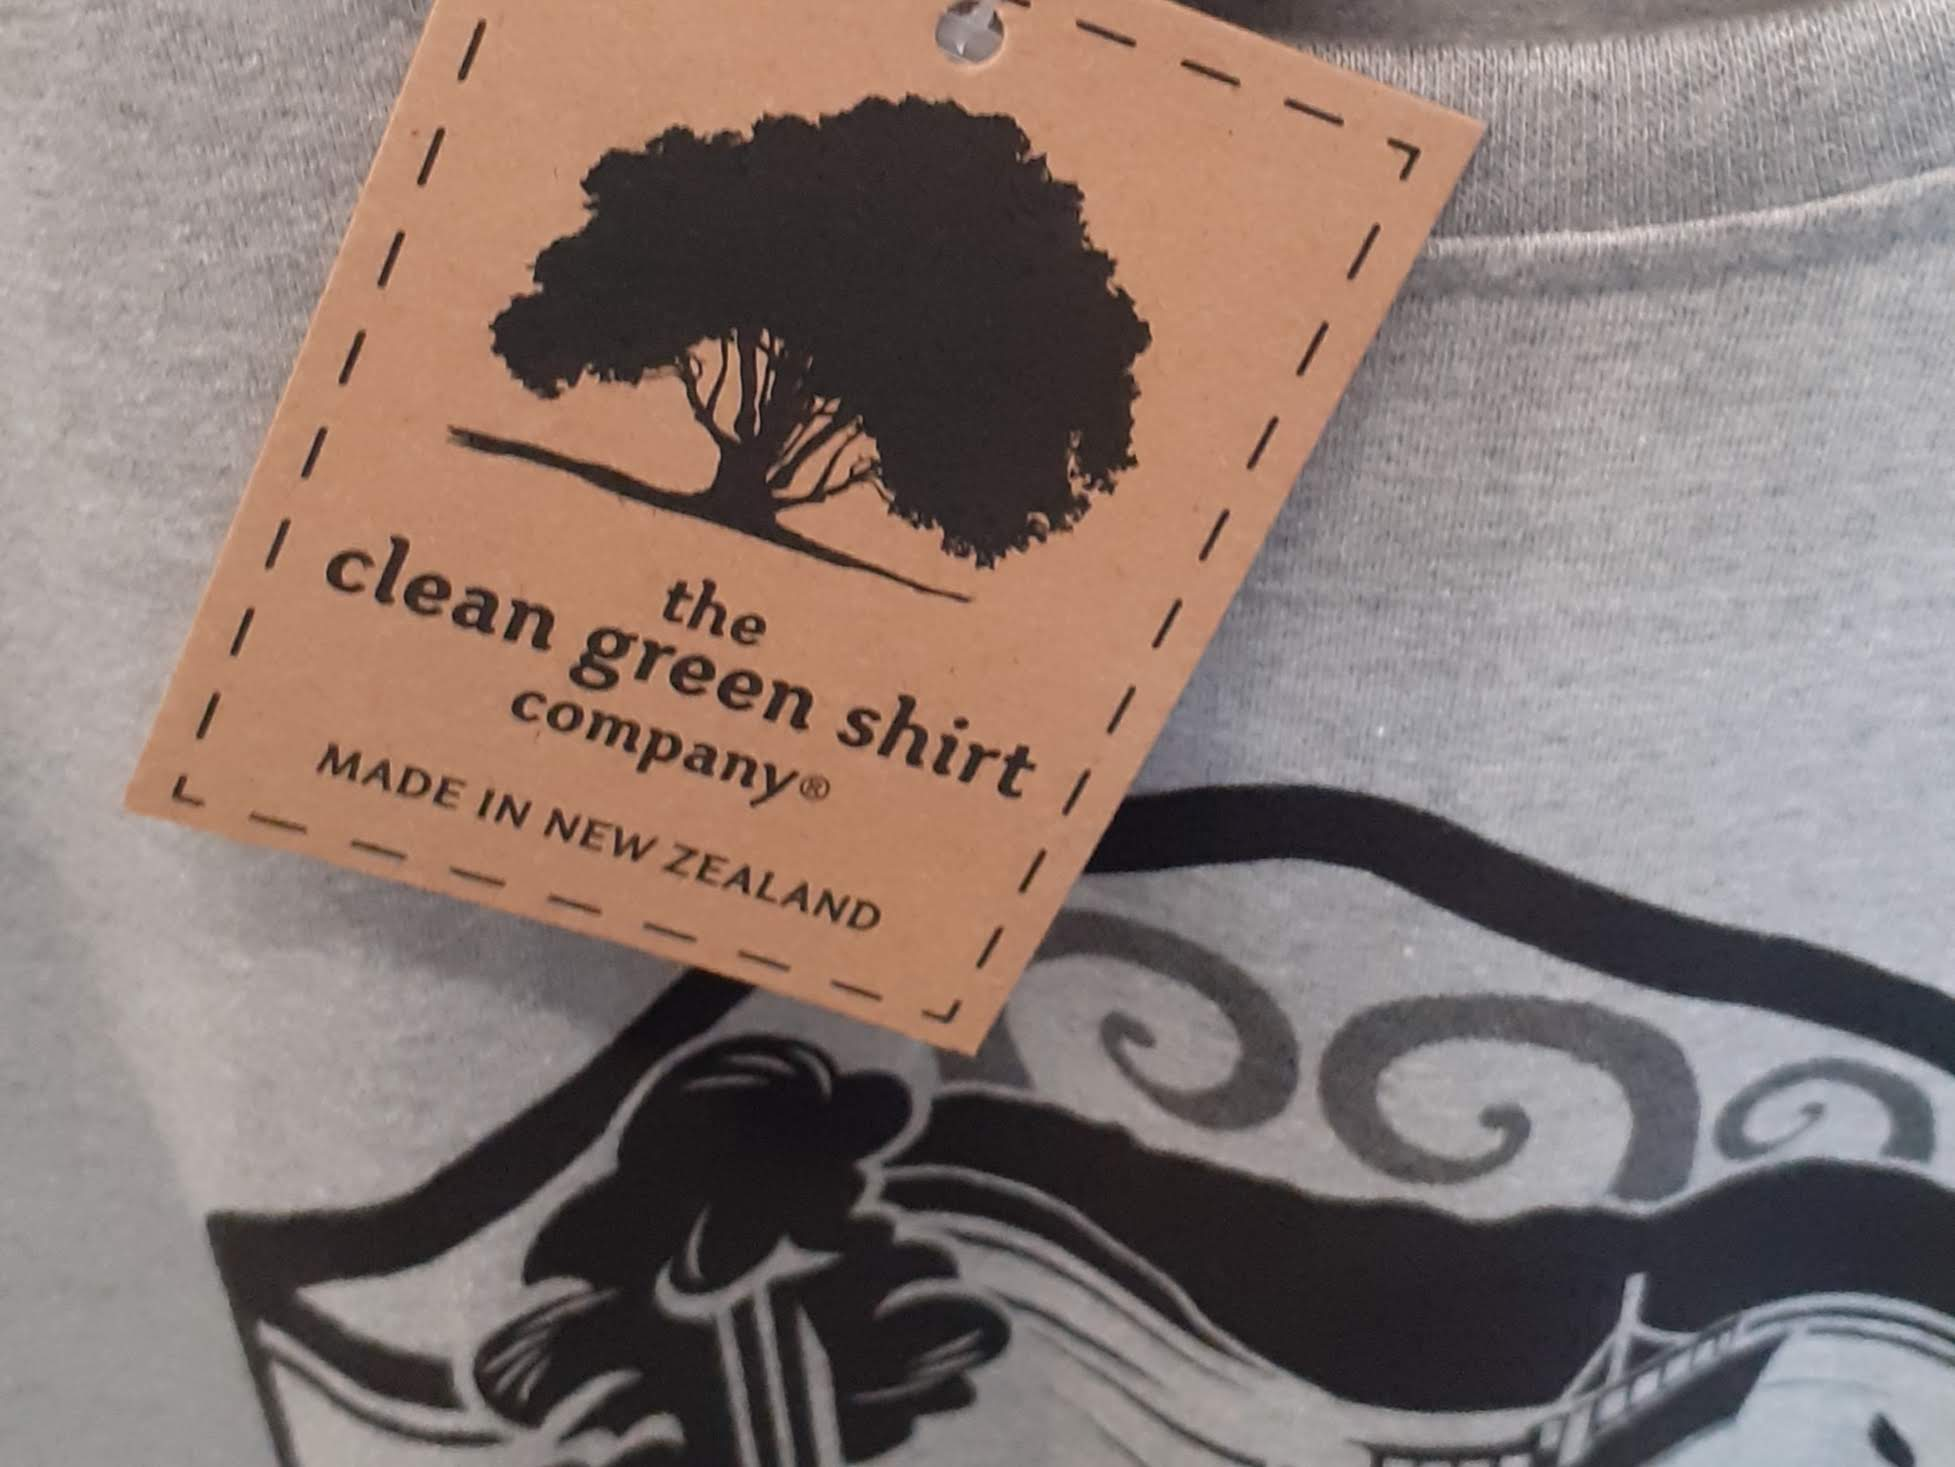 Support Local - Made in NZ